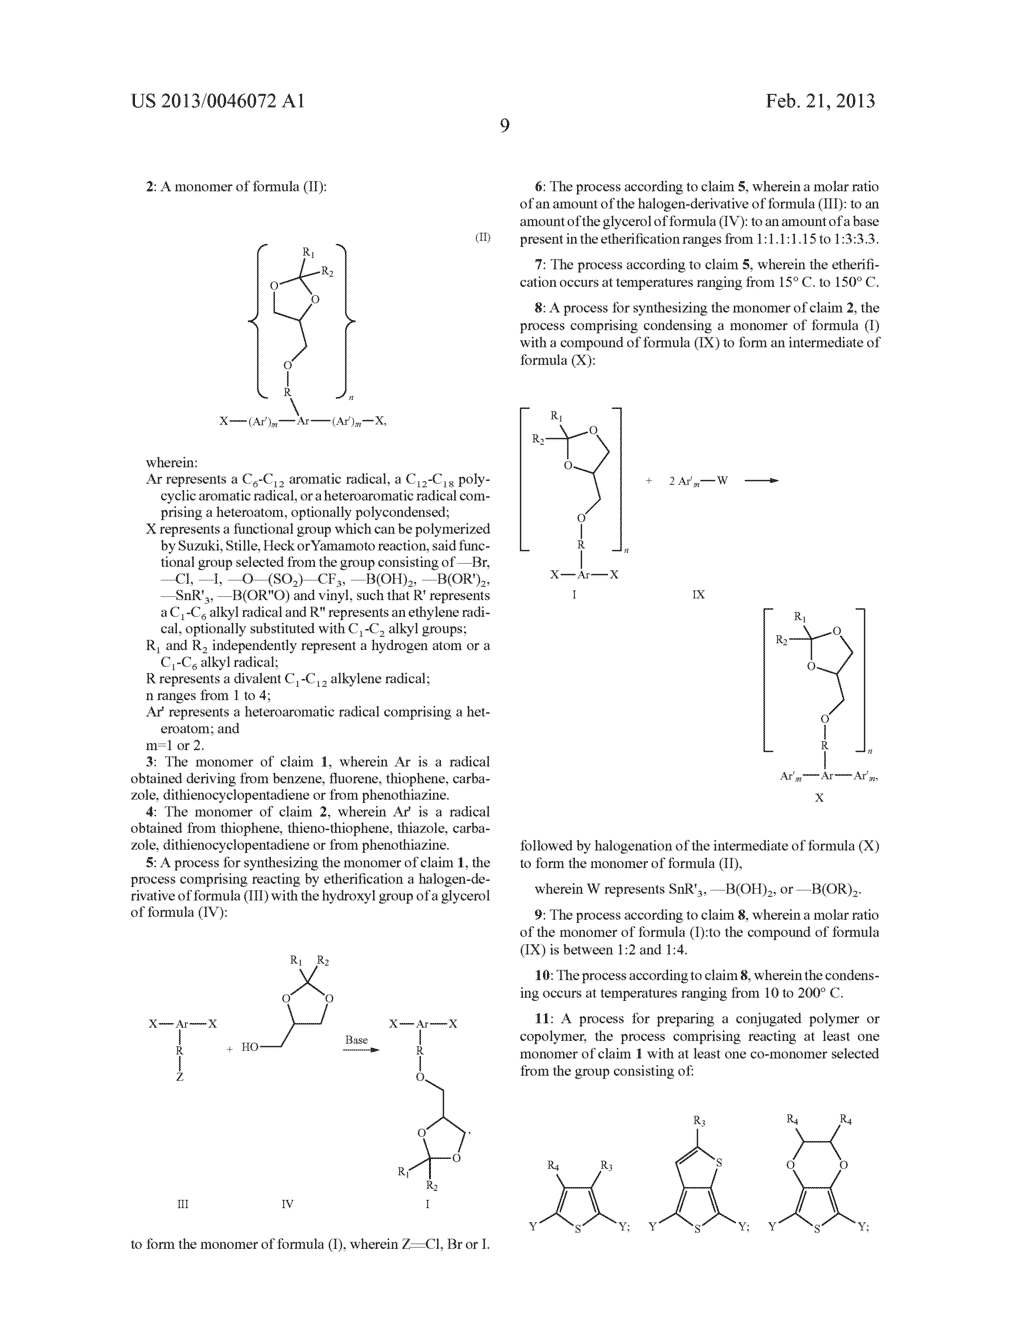 AROMATIC MONOMERS DERIVING FROM GLYCEROL UNITS, PROCESS FOR THEIR     PREPARATION AND USE THEREOF FOR THE PREPARATION OF WATER-SOLUBLE     CONJUGATED POLYMERS - diagram, schematic, and image 10